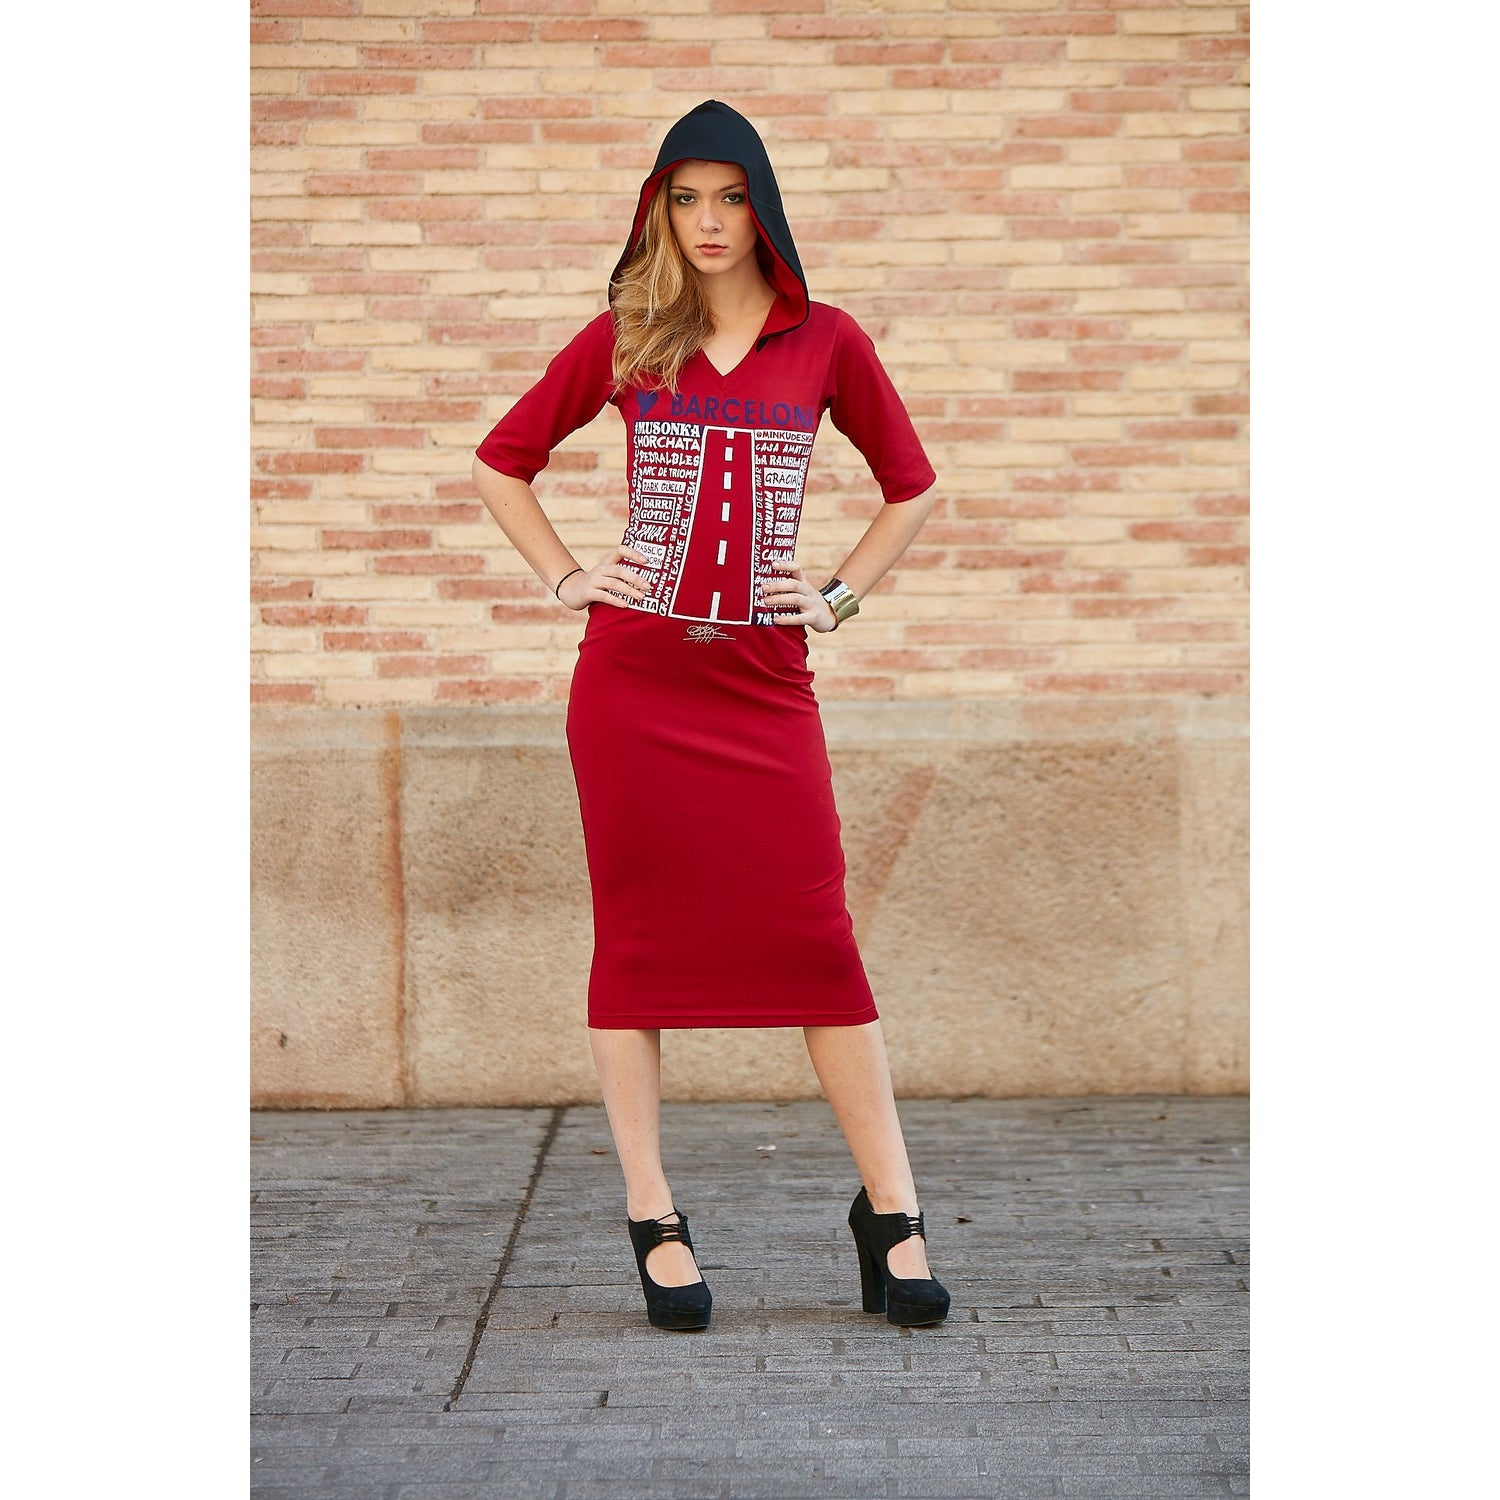 VELVET APPLIQUE LUV BARCELONA HOODED MIDI DRESS